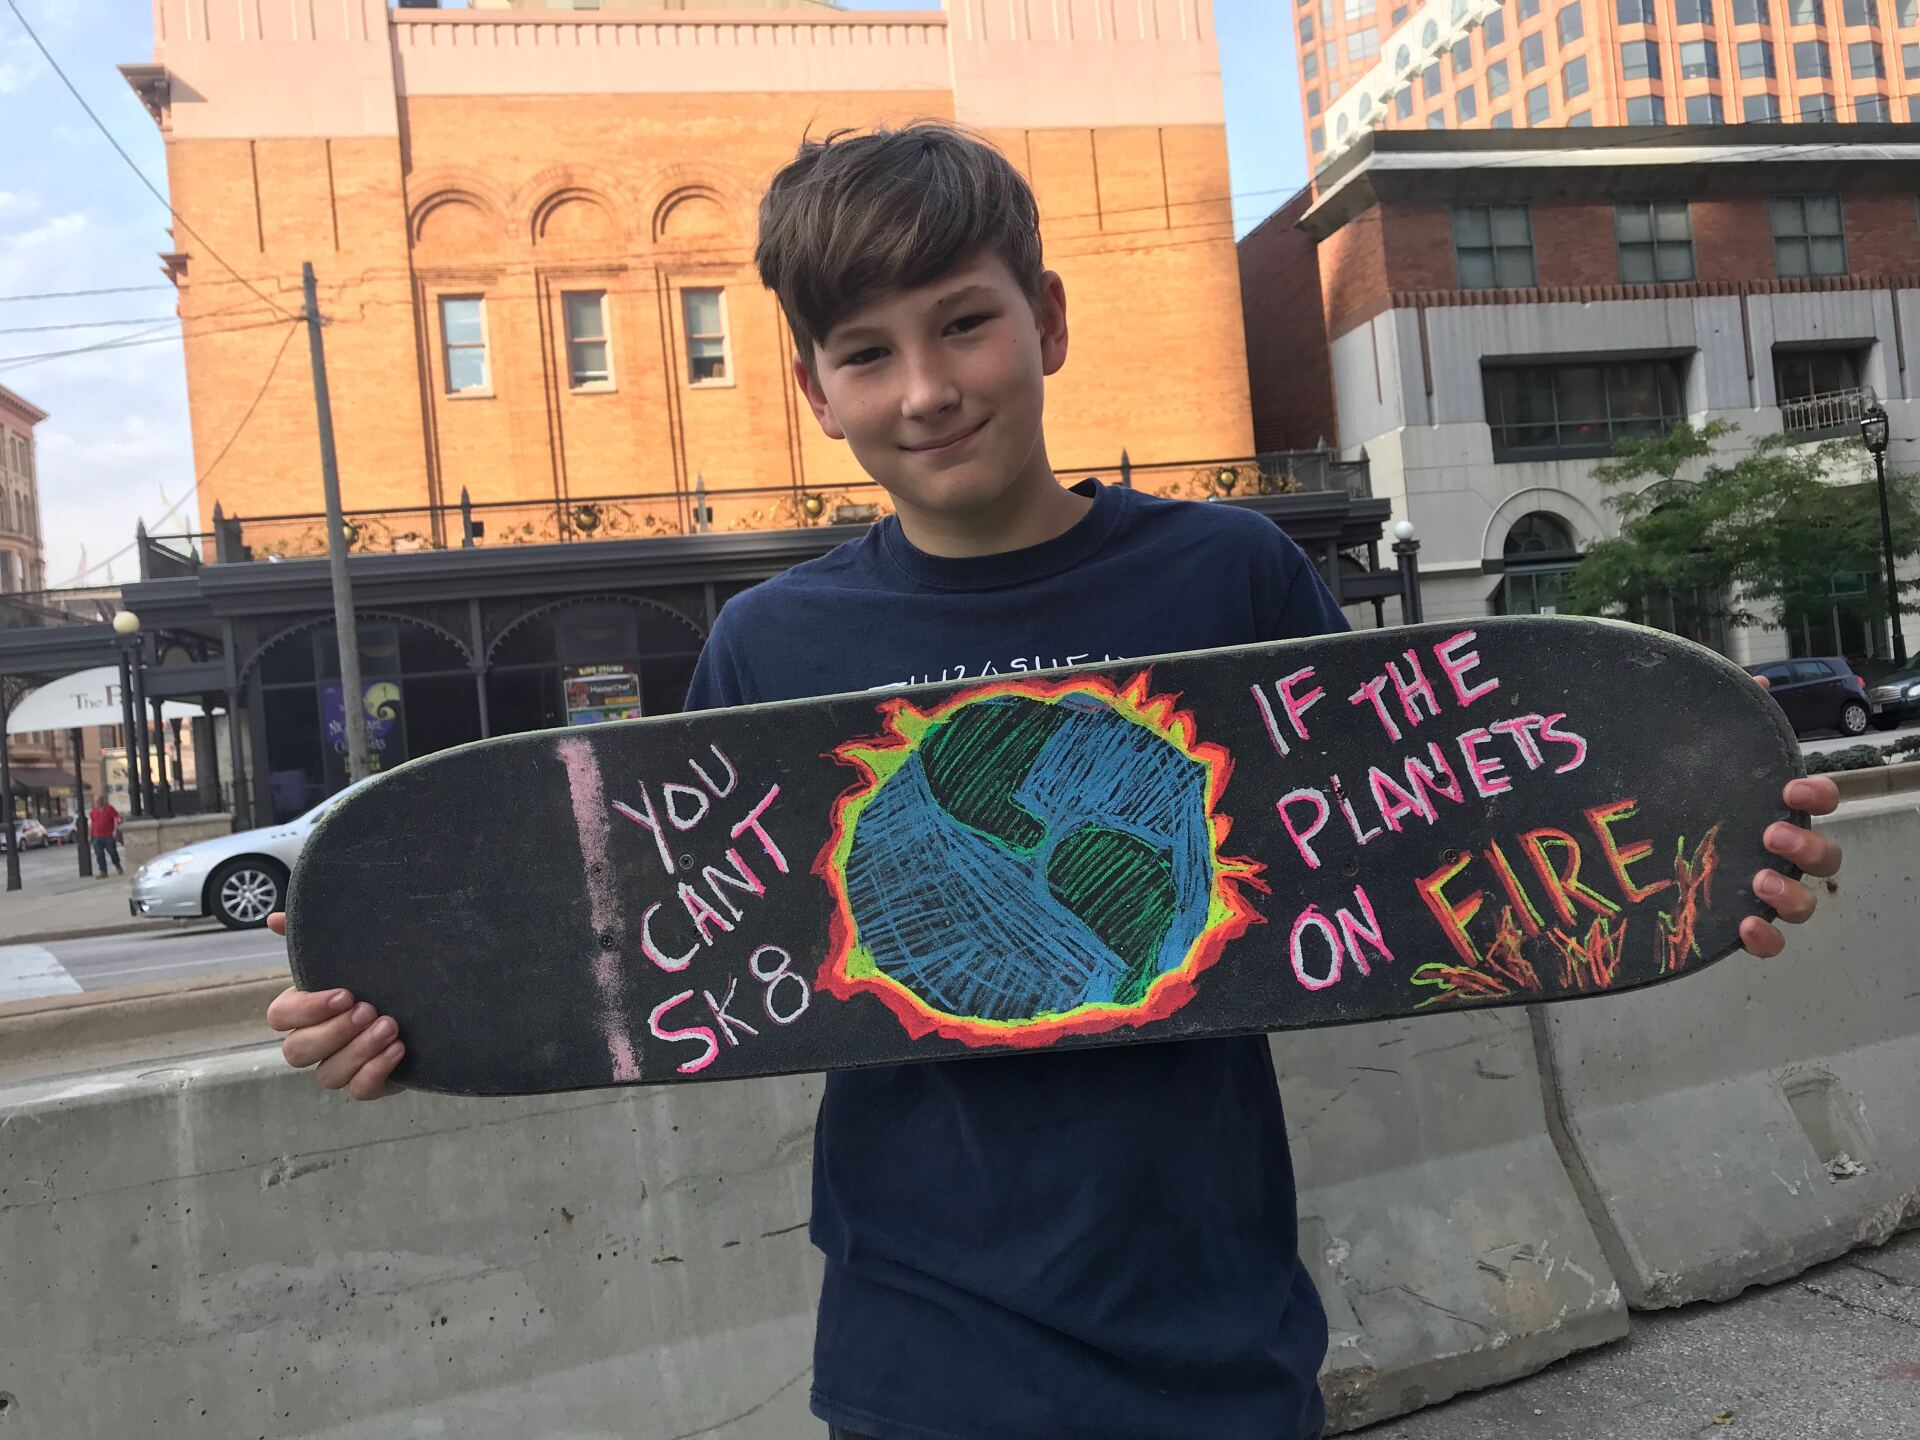 Photos of people marching in the youth climate strike.